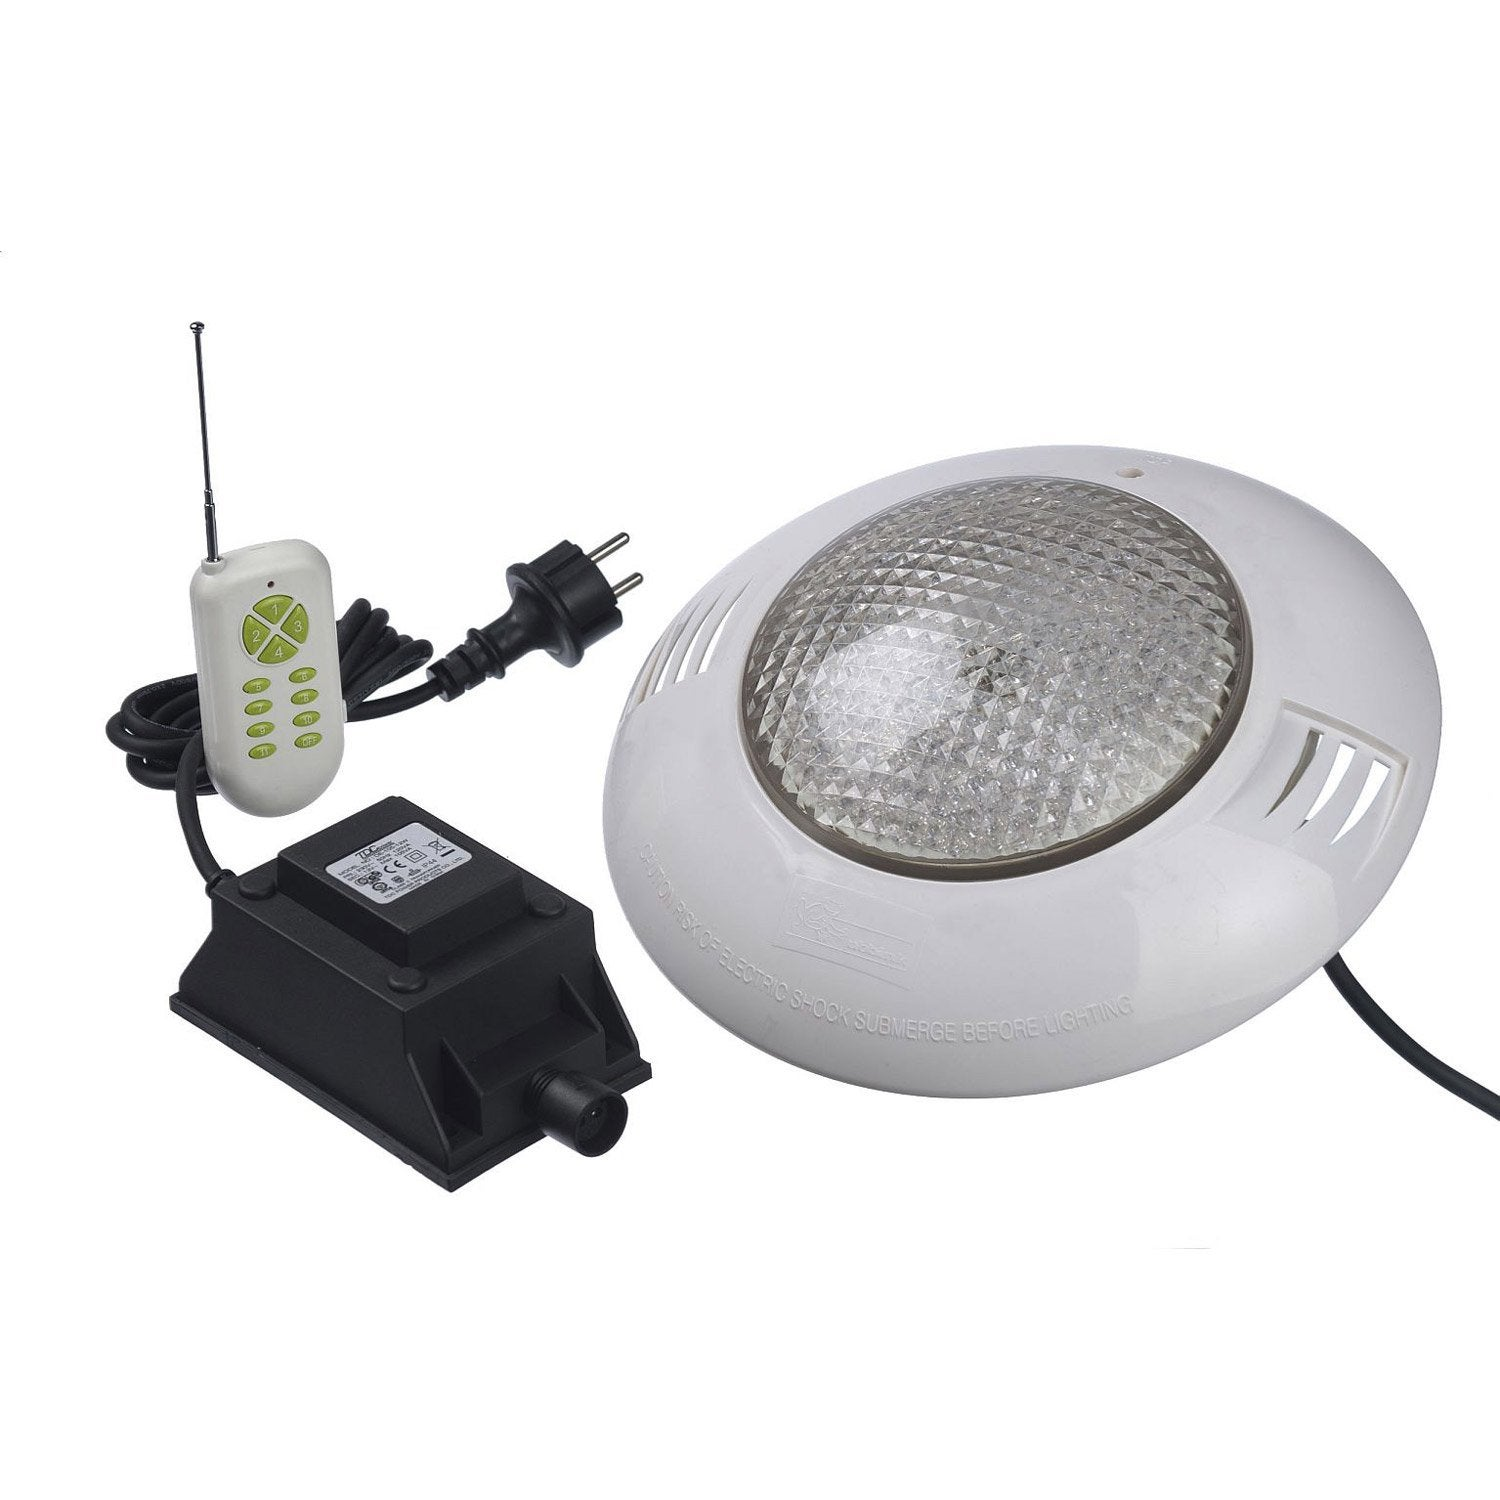 Spot led pour piscine bois multicolore 35 w leroy merlin for Spot piscine desjoyaux